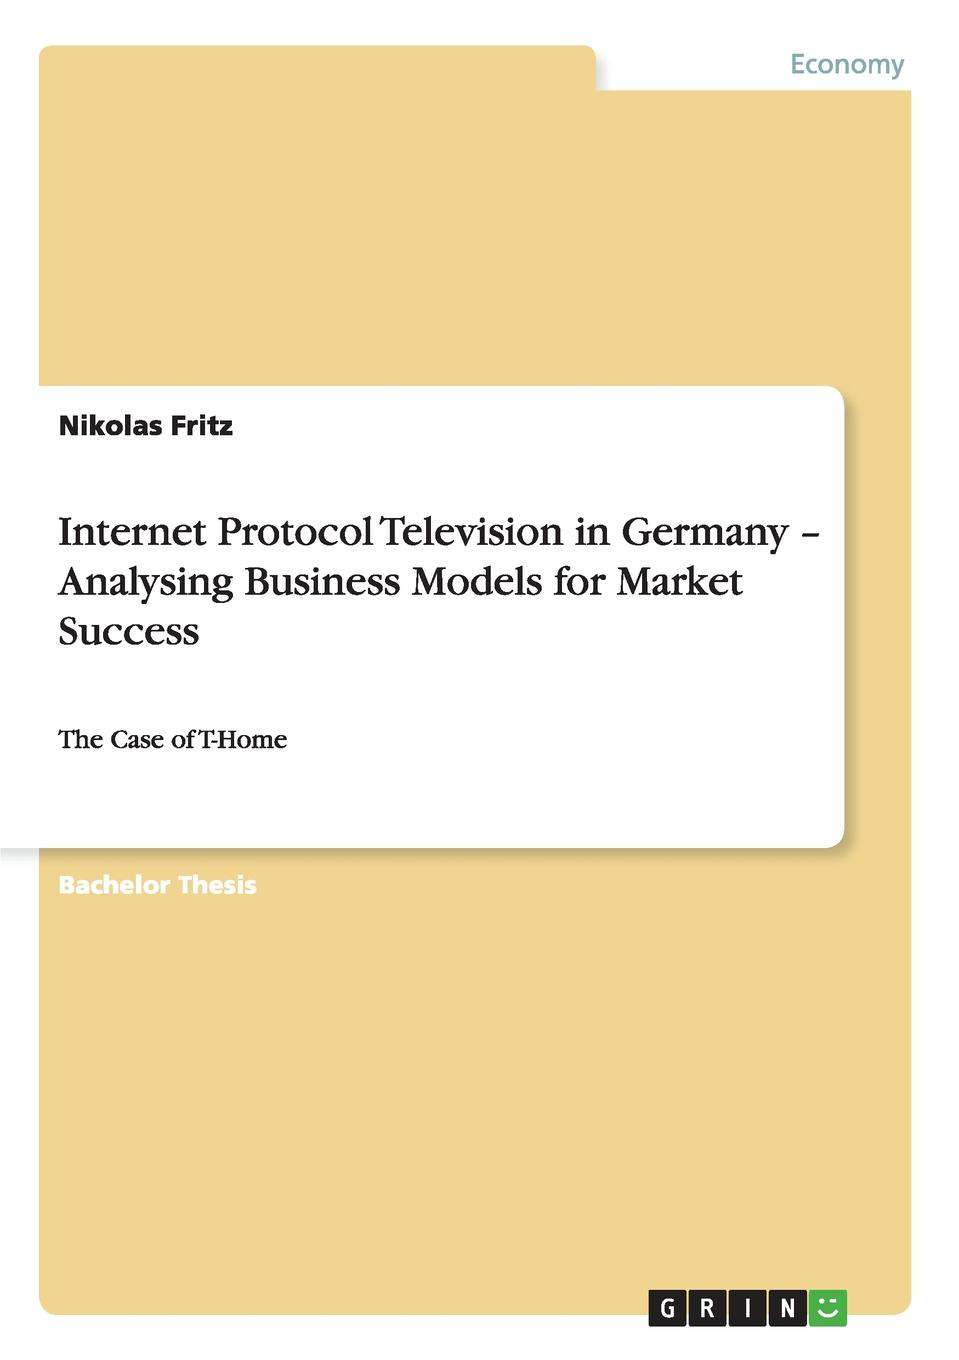 цена на Nikolas Fritz Internet Protocol Television in Germany - Analysing Business Models for Market Success